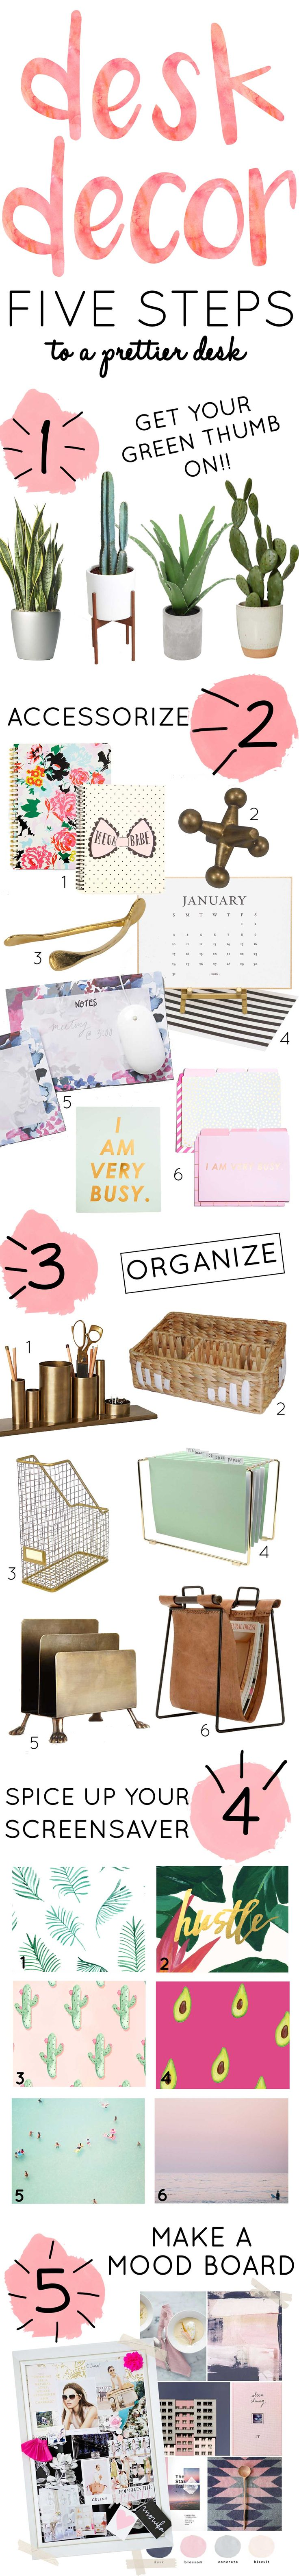 Desk Decor! 5 steps to making your work space prettier.